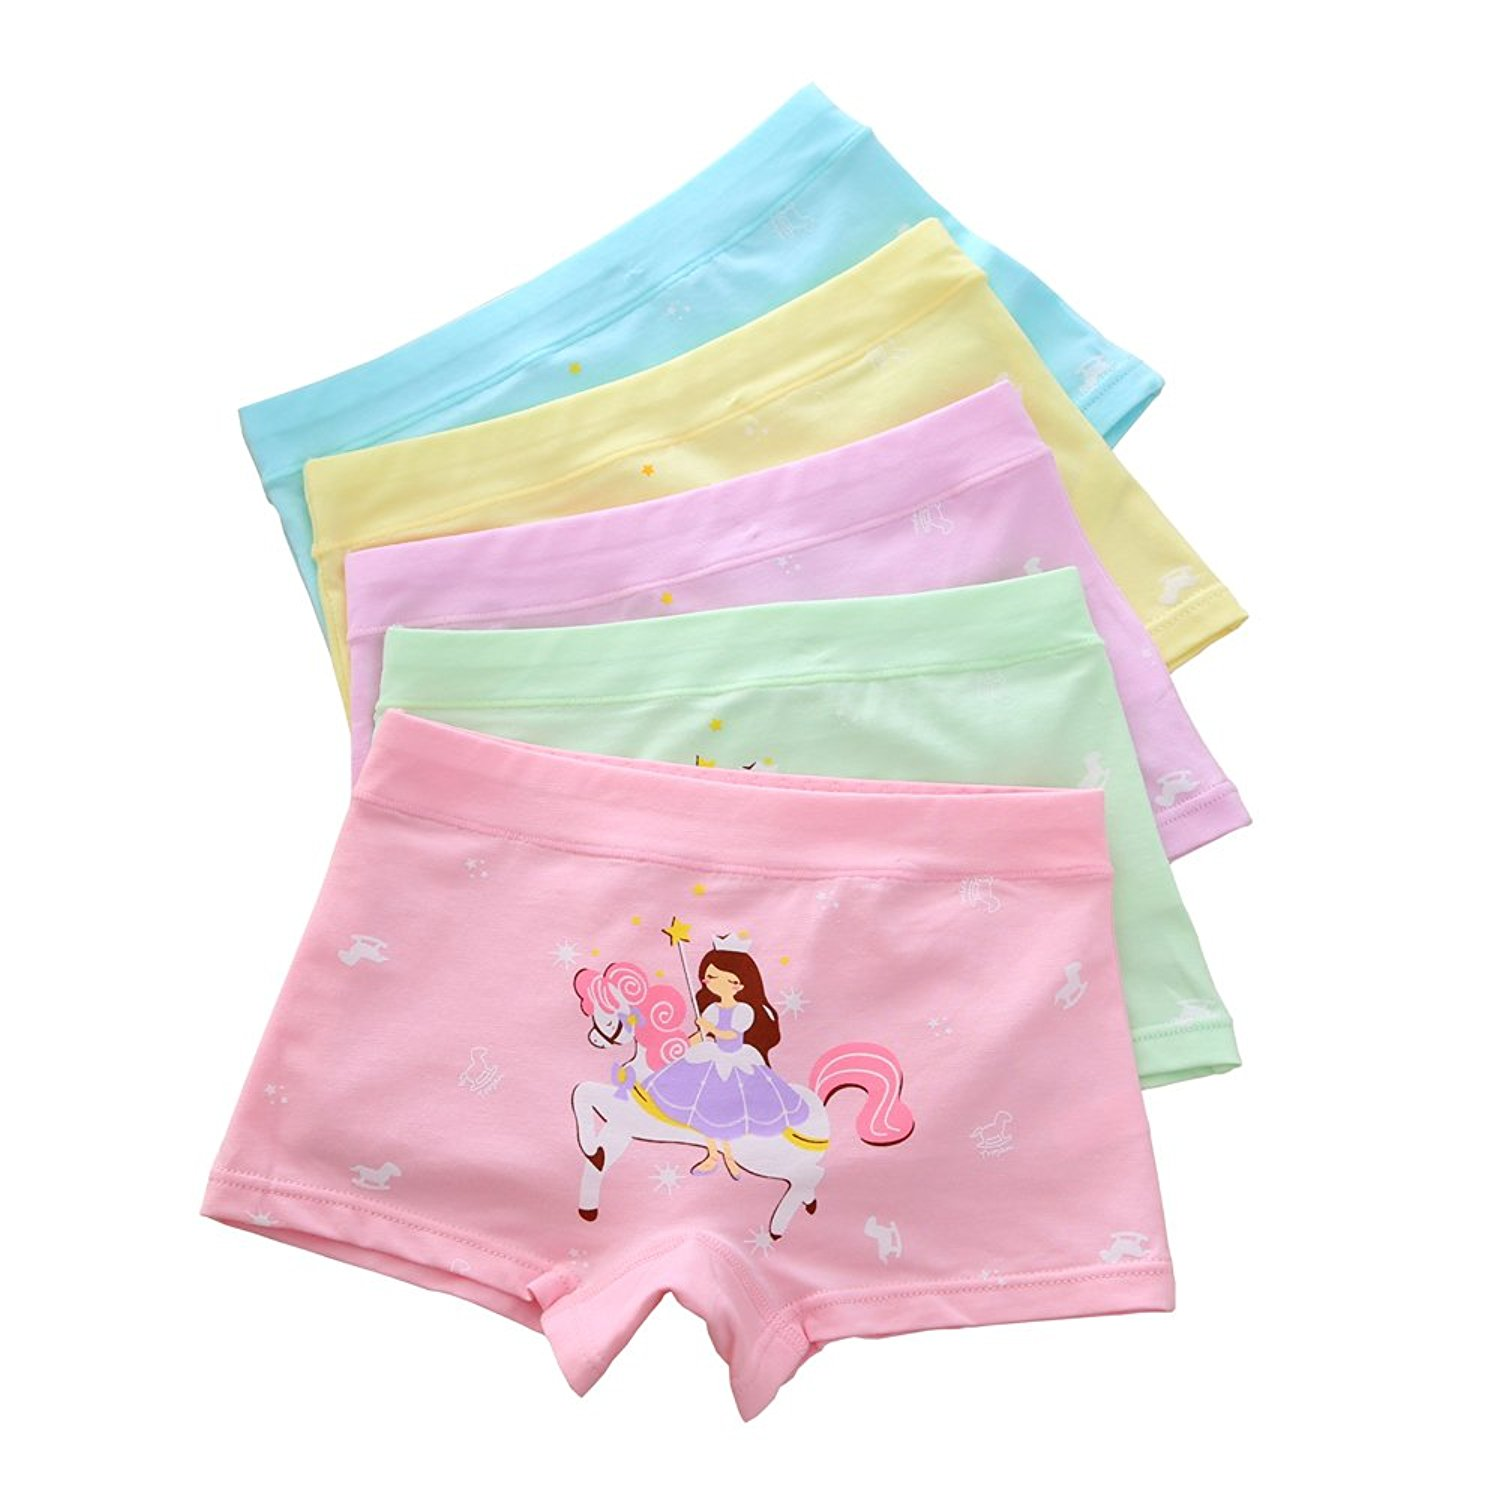 Jiaboy 5 Of Pack Girls Panties Princess Print Little Girls Underwear Cotton Boyshorts Hipster Kids Briefs 3-10 Years